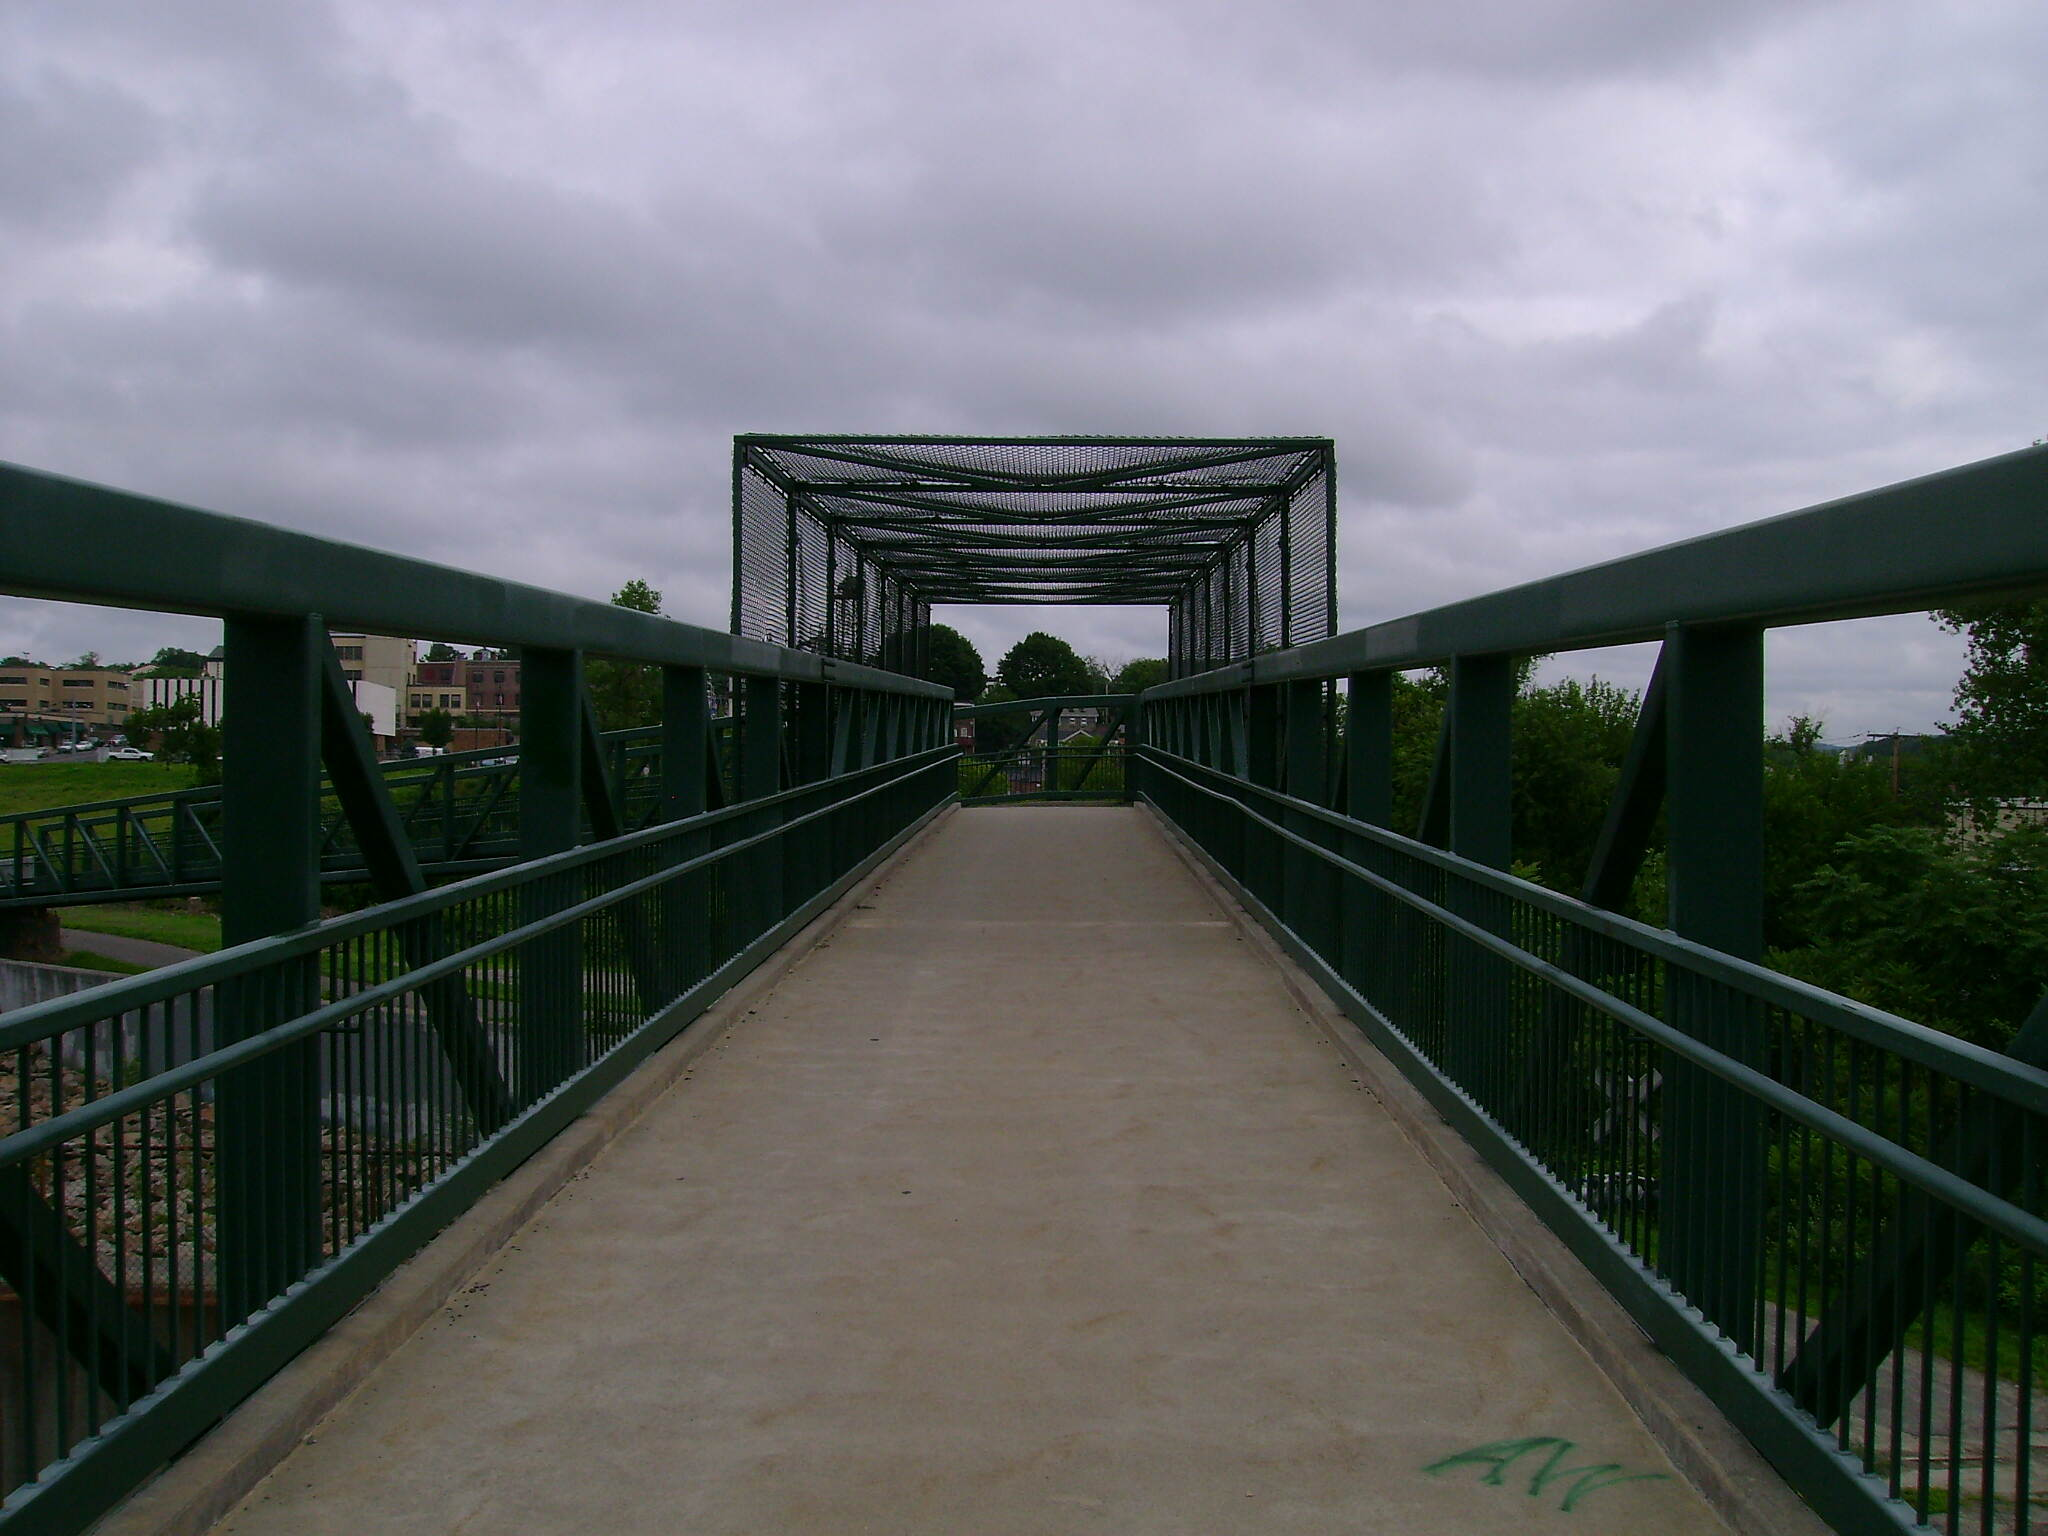 Derby Greenway Footbridge on the Derby Greenway